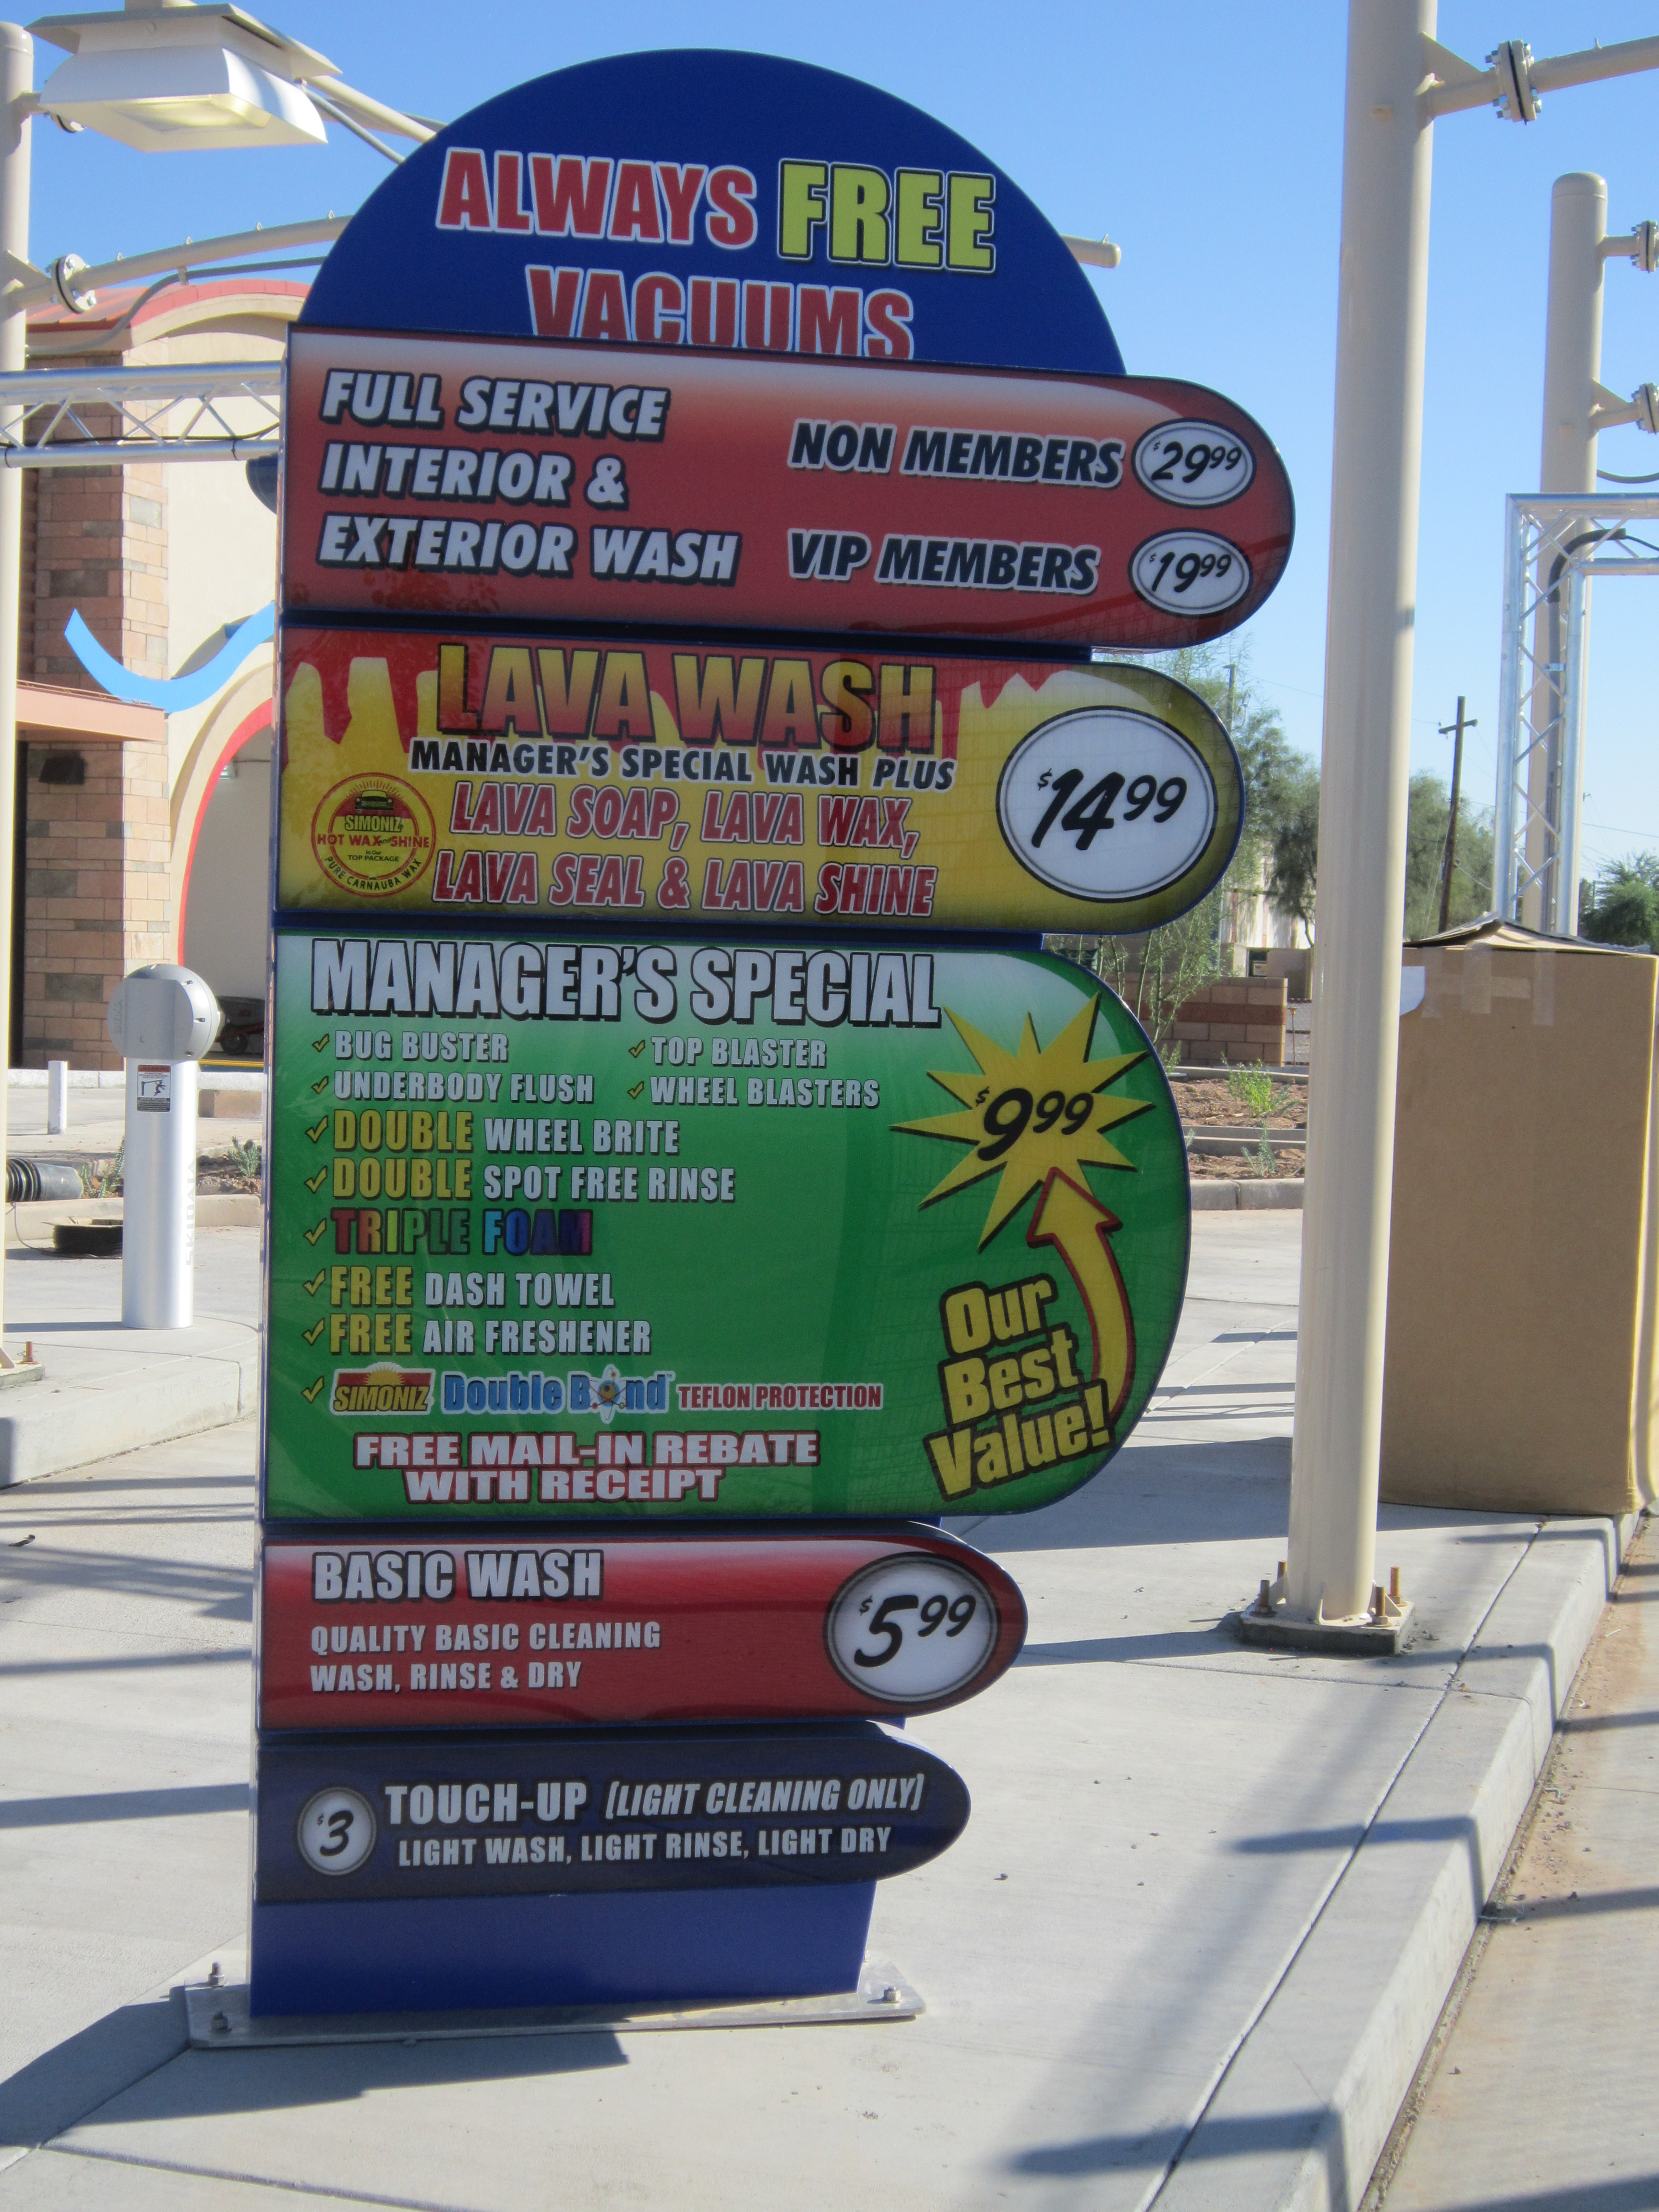 First look at the prices of the Maricopa car wash - Brian